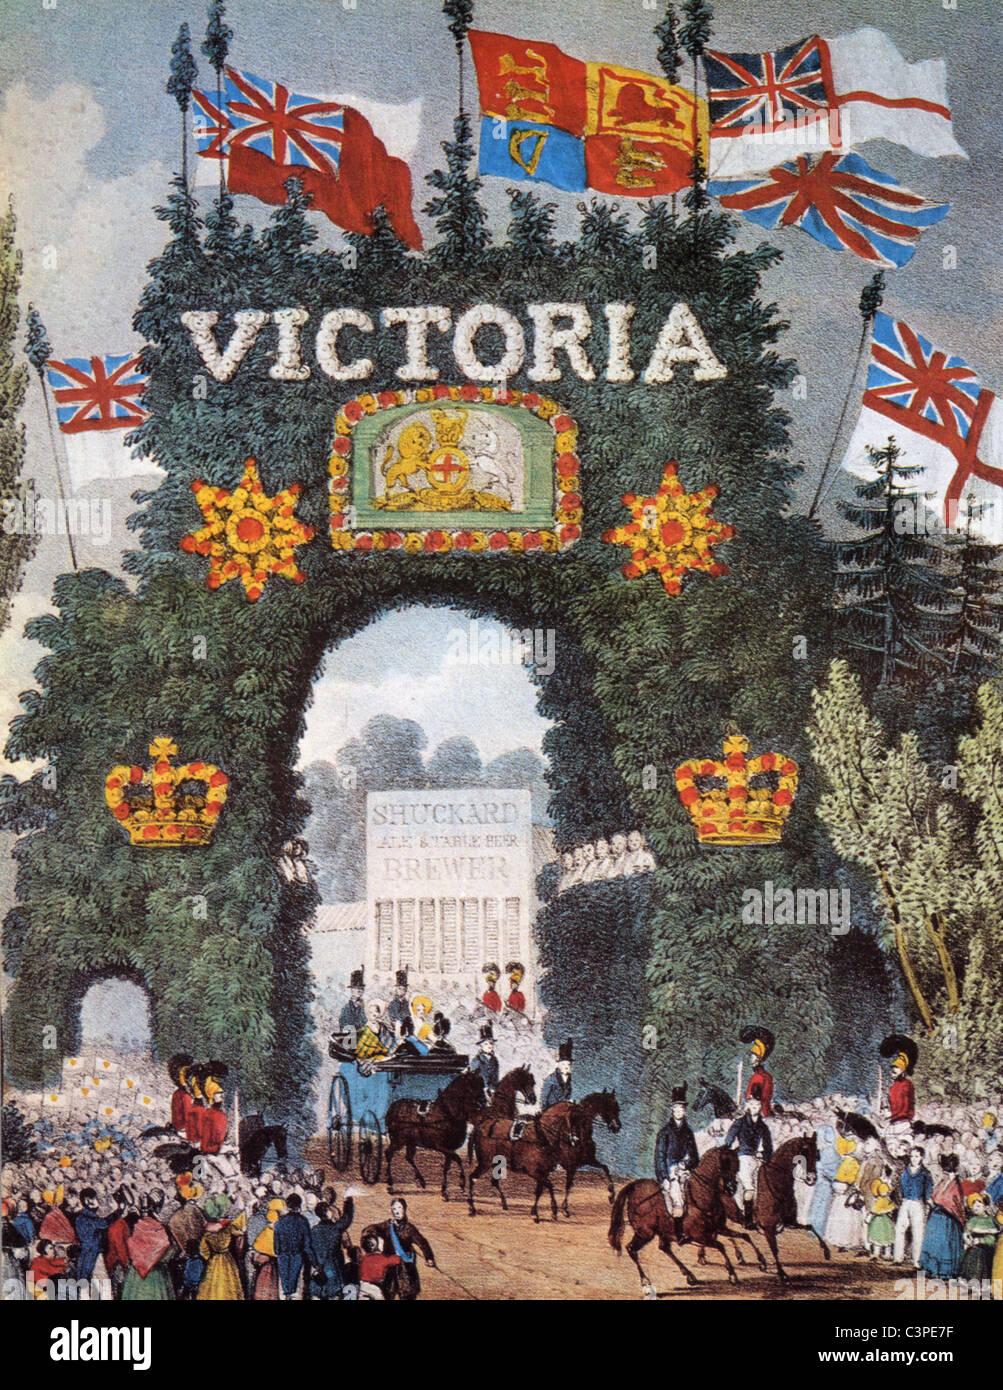 QUEEN VICTORIA triumphal entry to a town in the UK - Stock Image